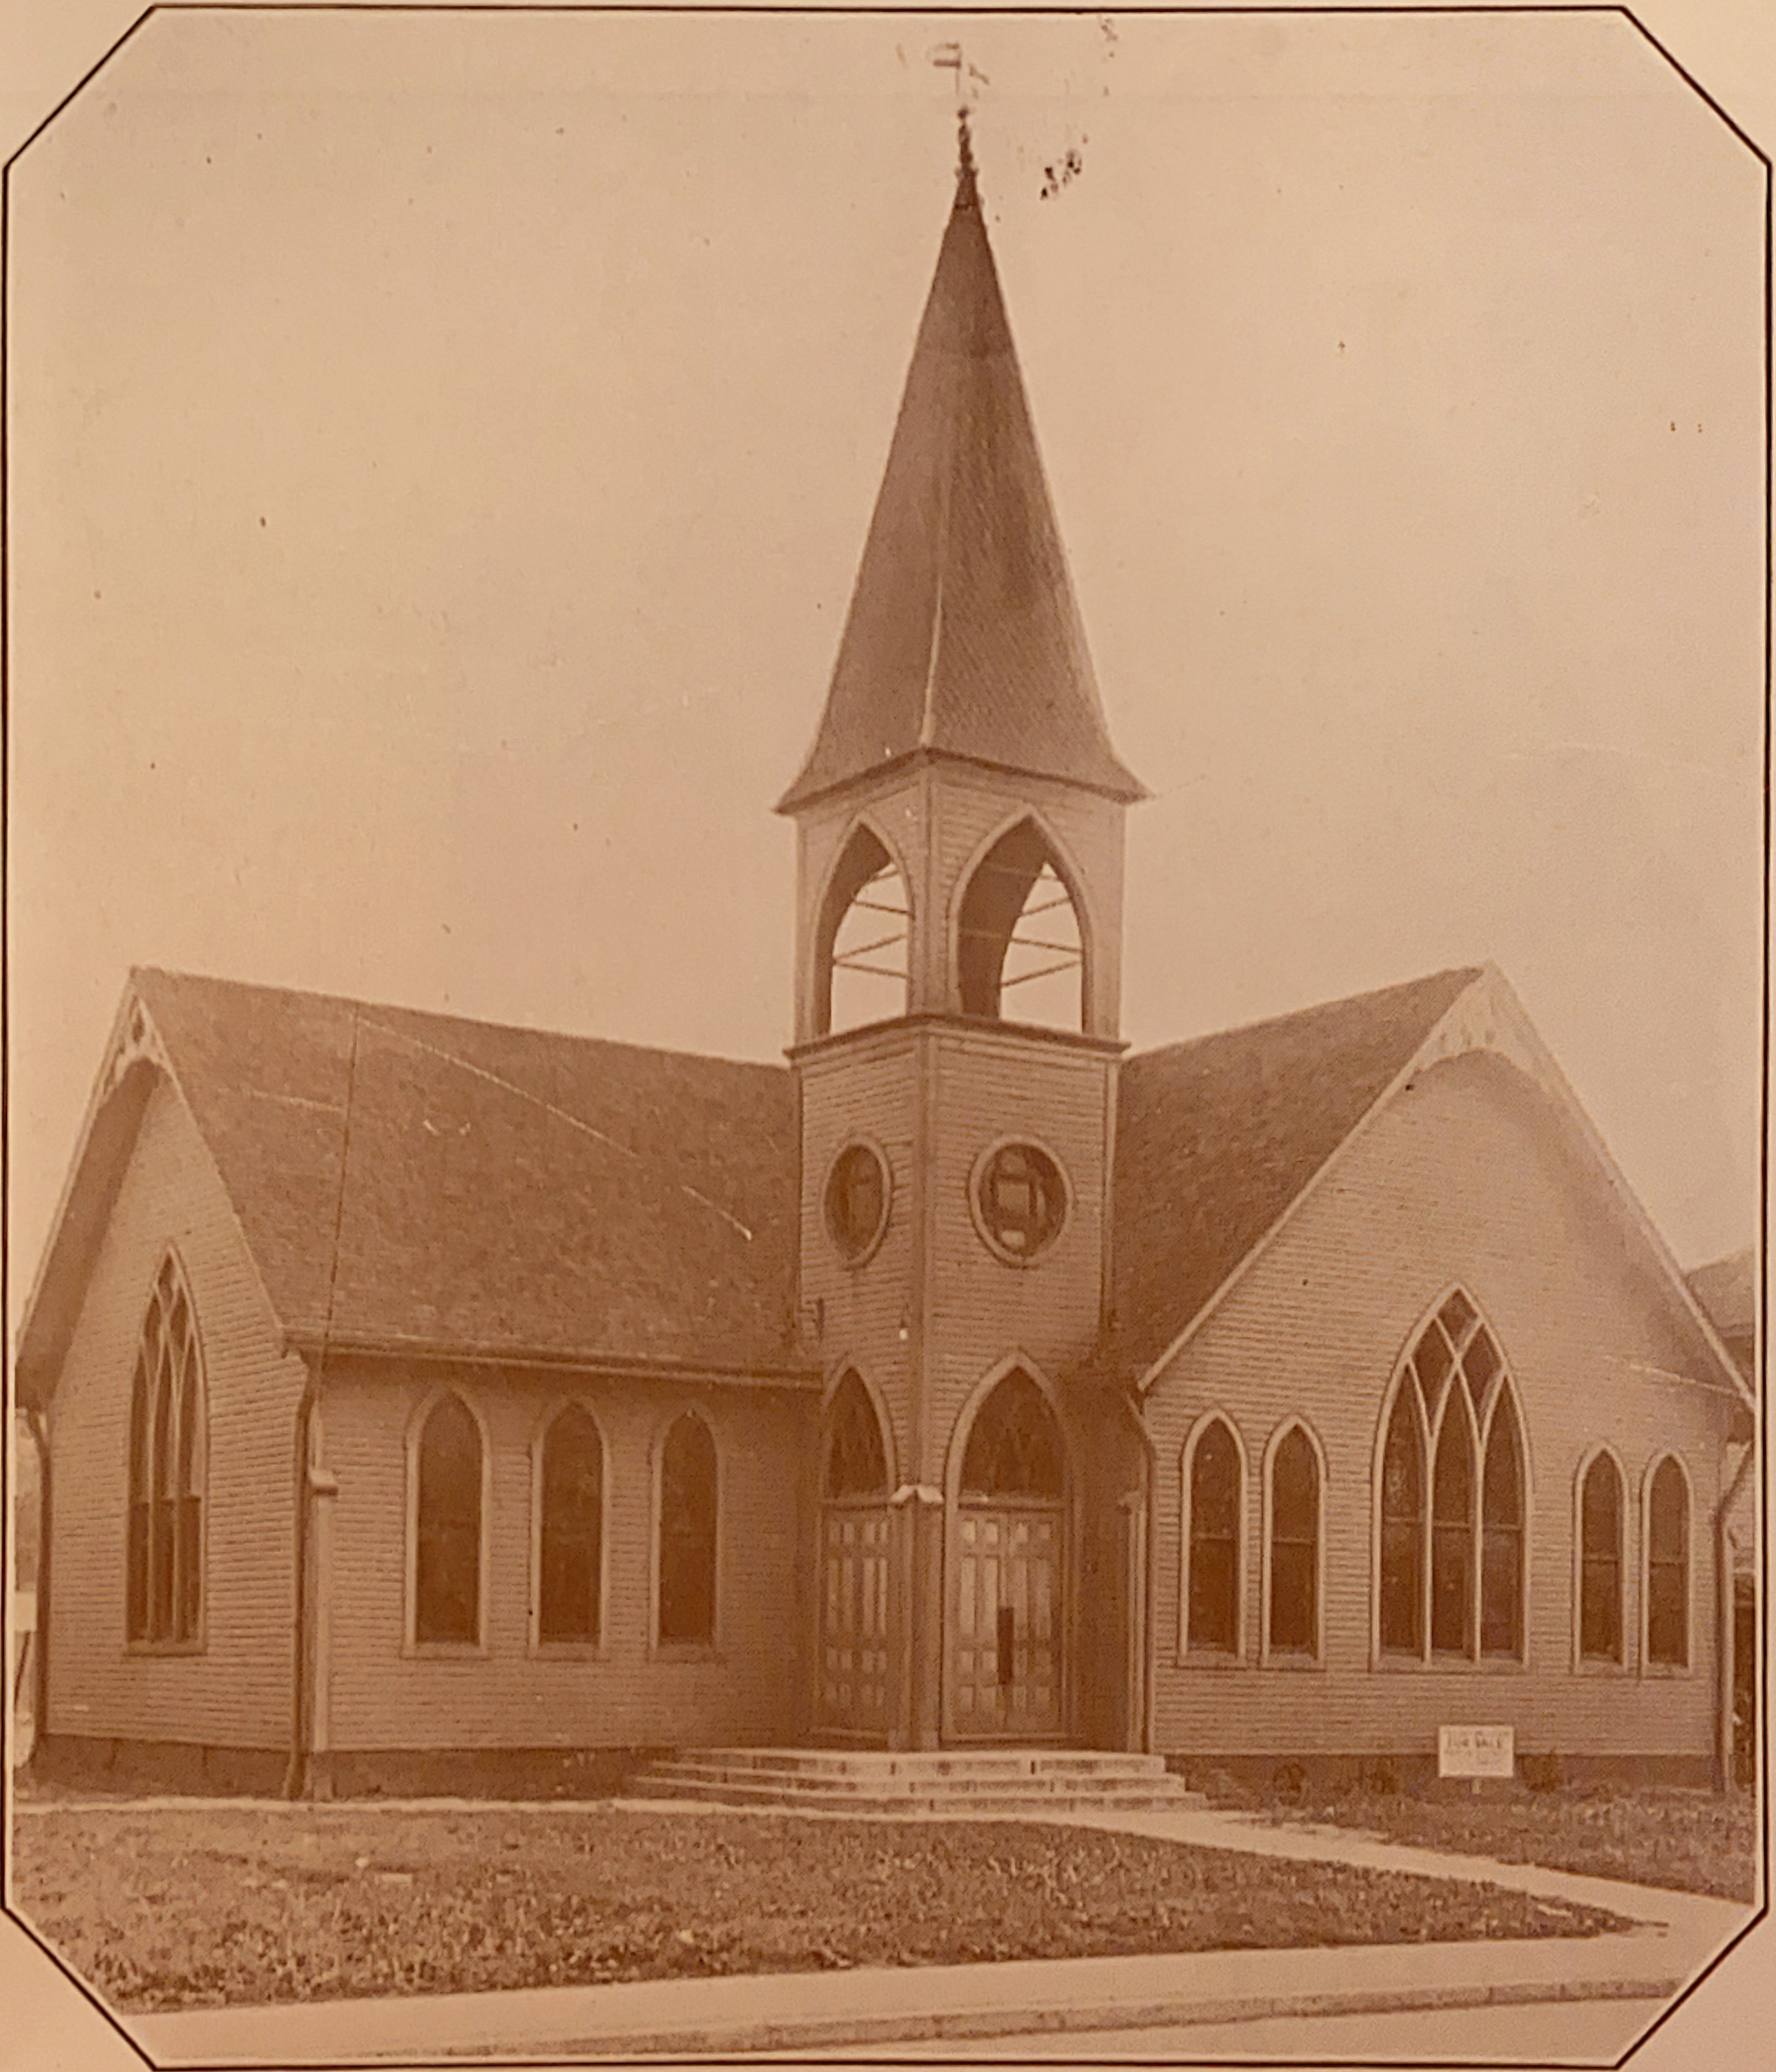 The first church building constructed for the St. Mark's congregation, services were held here from 1893 to 1921.